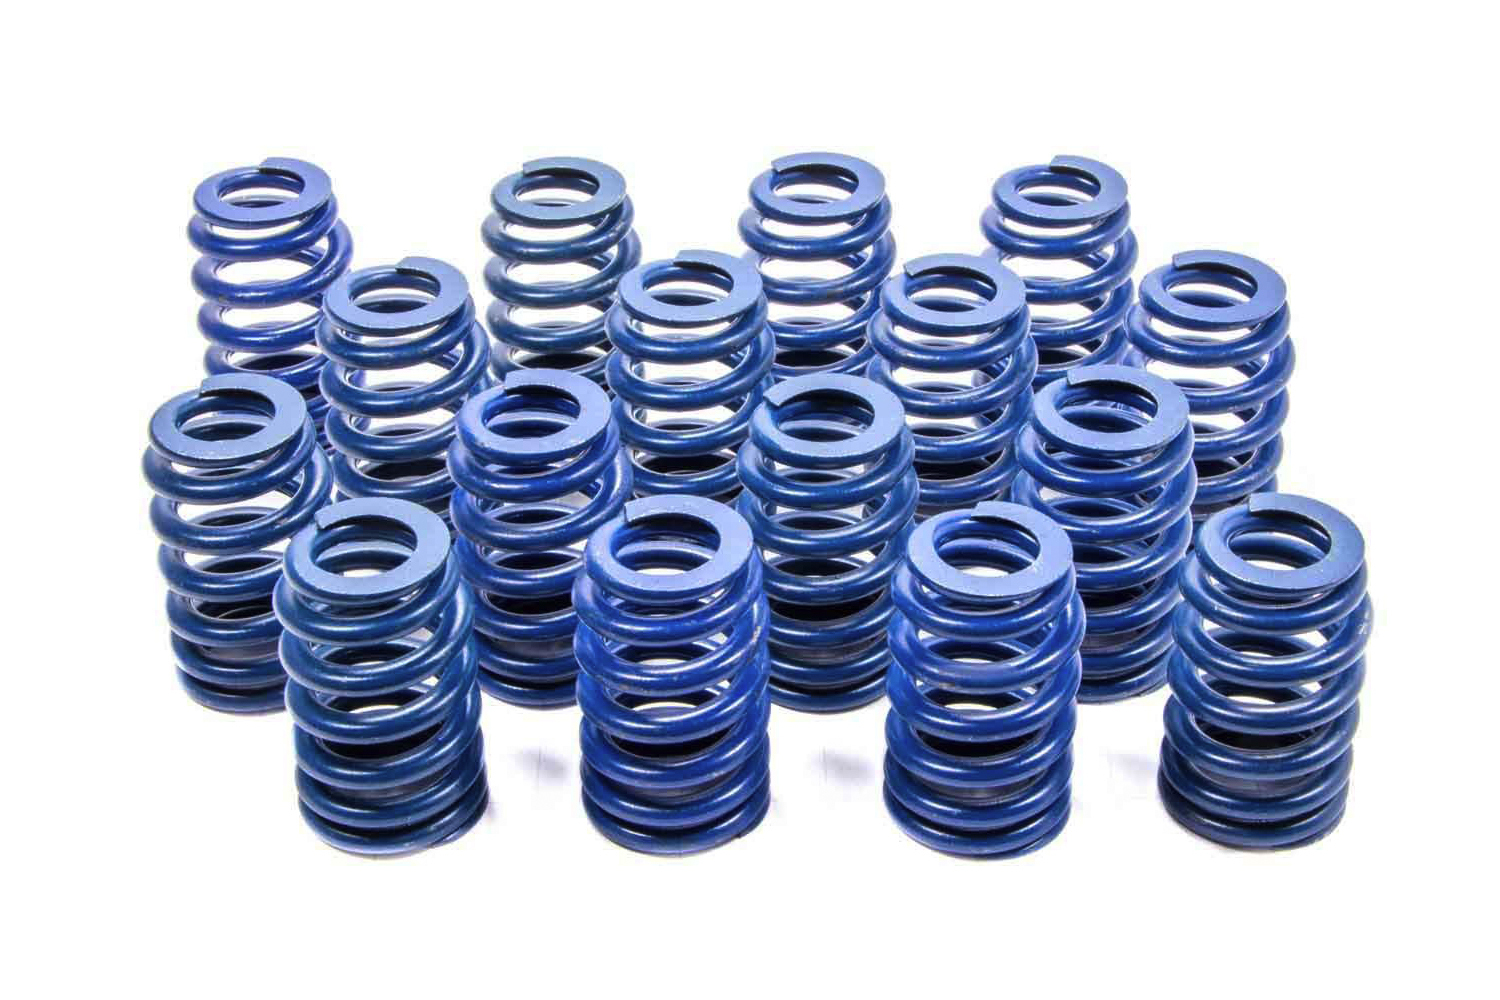 CHEVROLET PERFORMANCE 604 Beehive Valve Springs 16